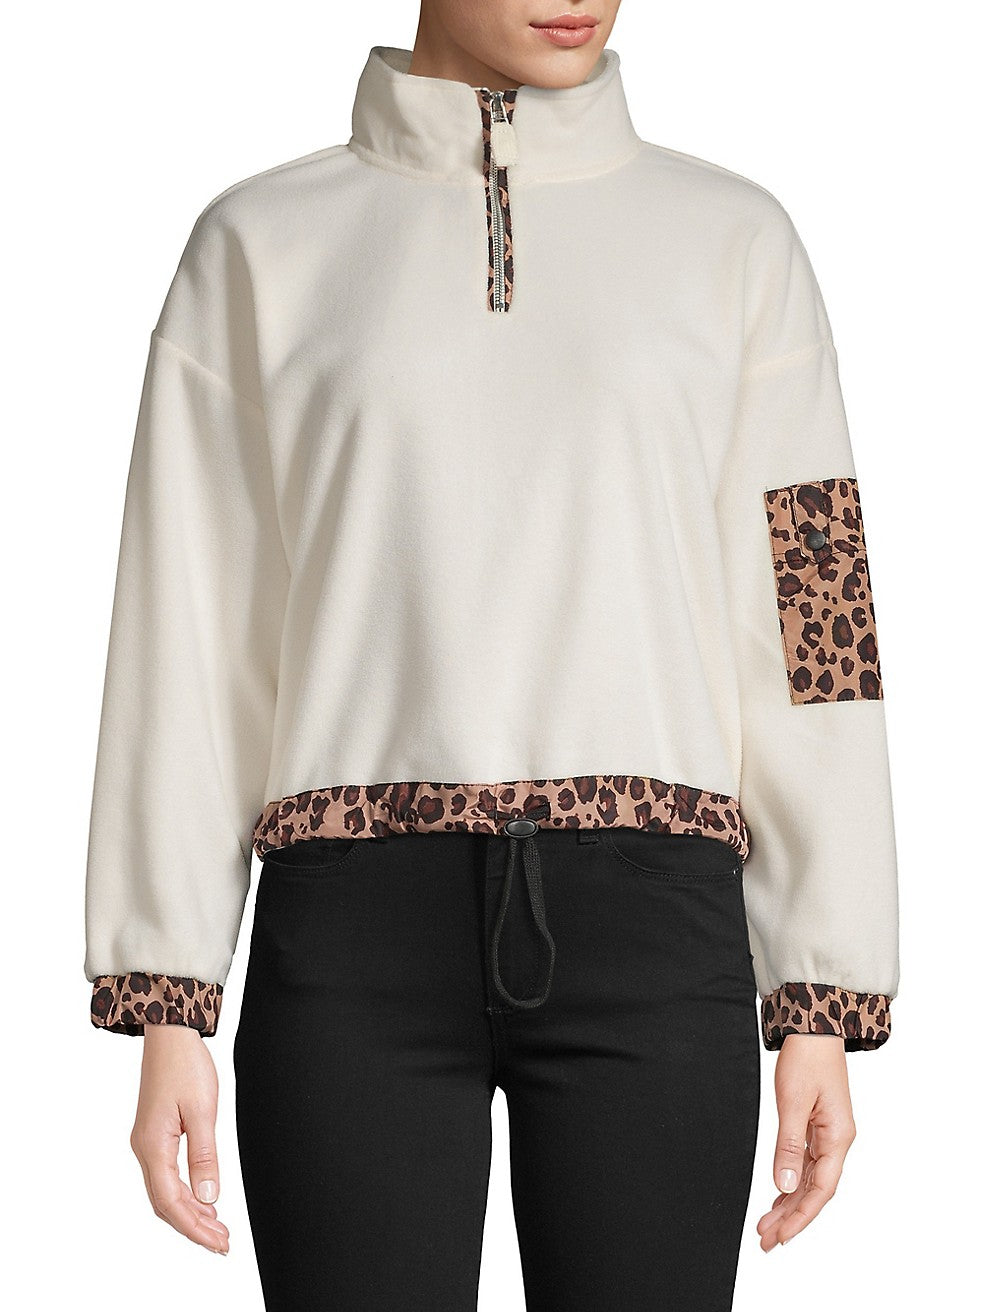 Stand-Collar Long-Sleeve Sweater